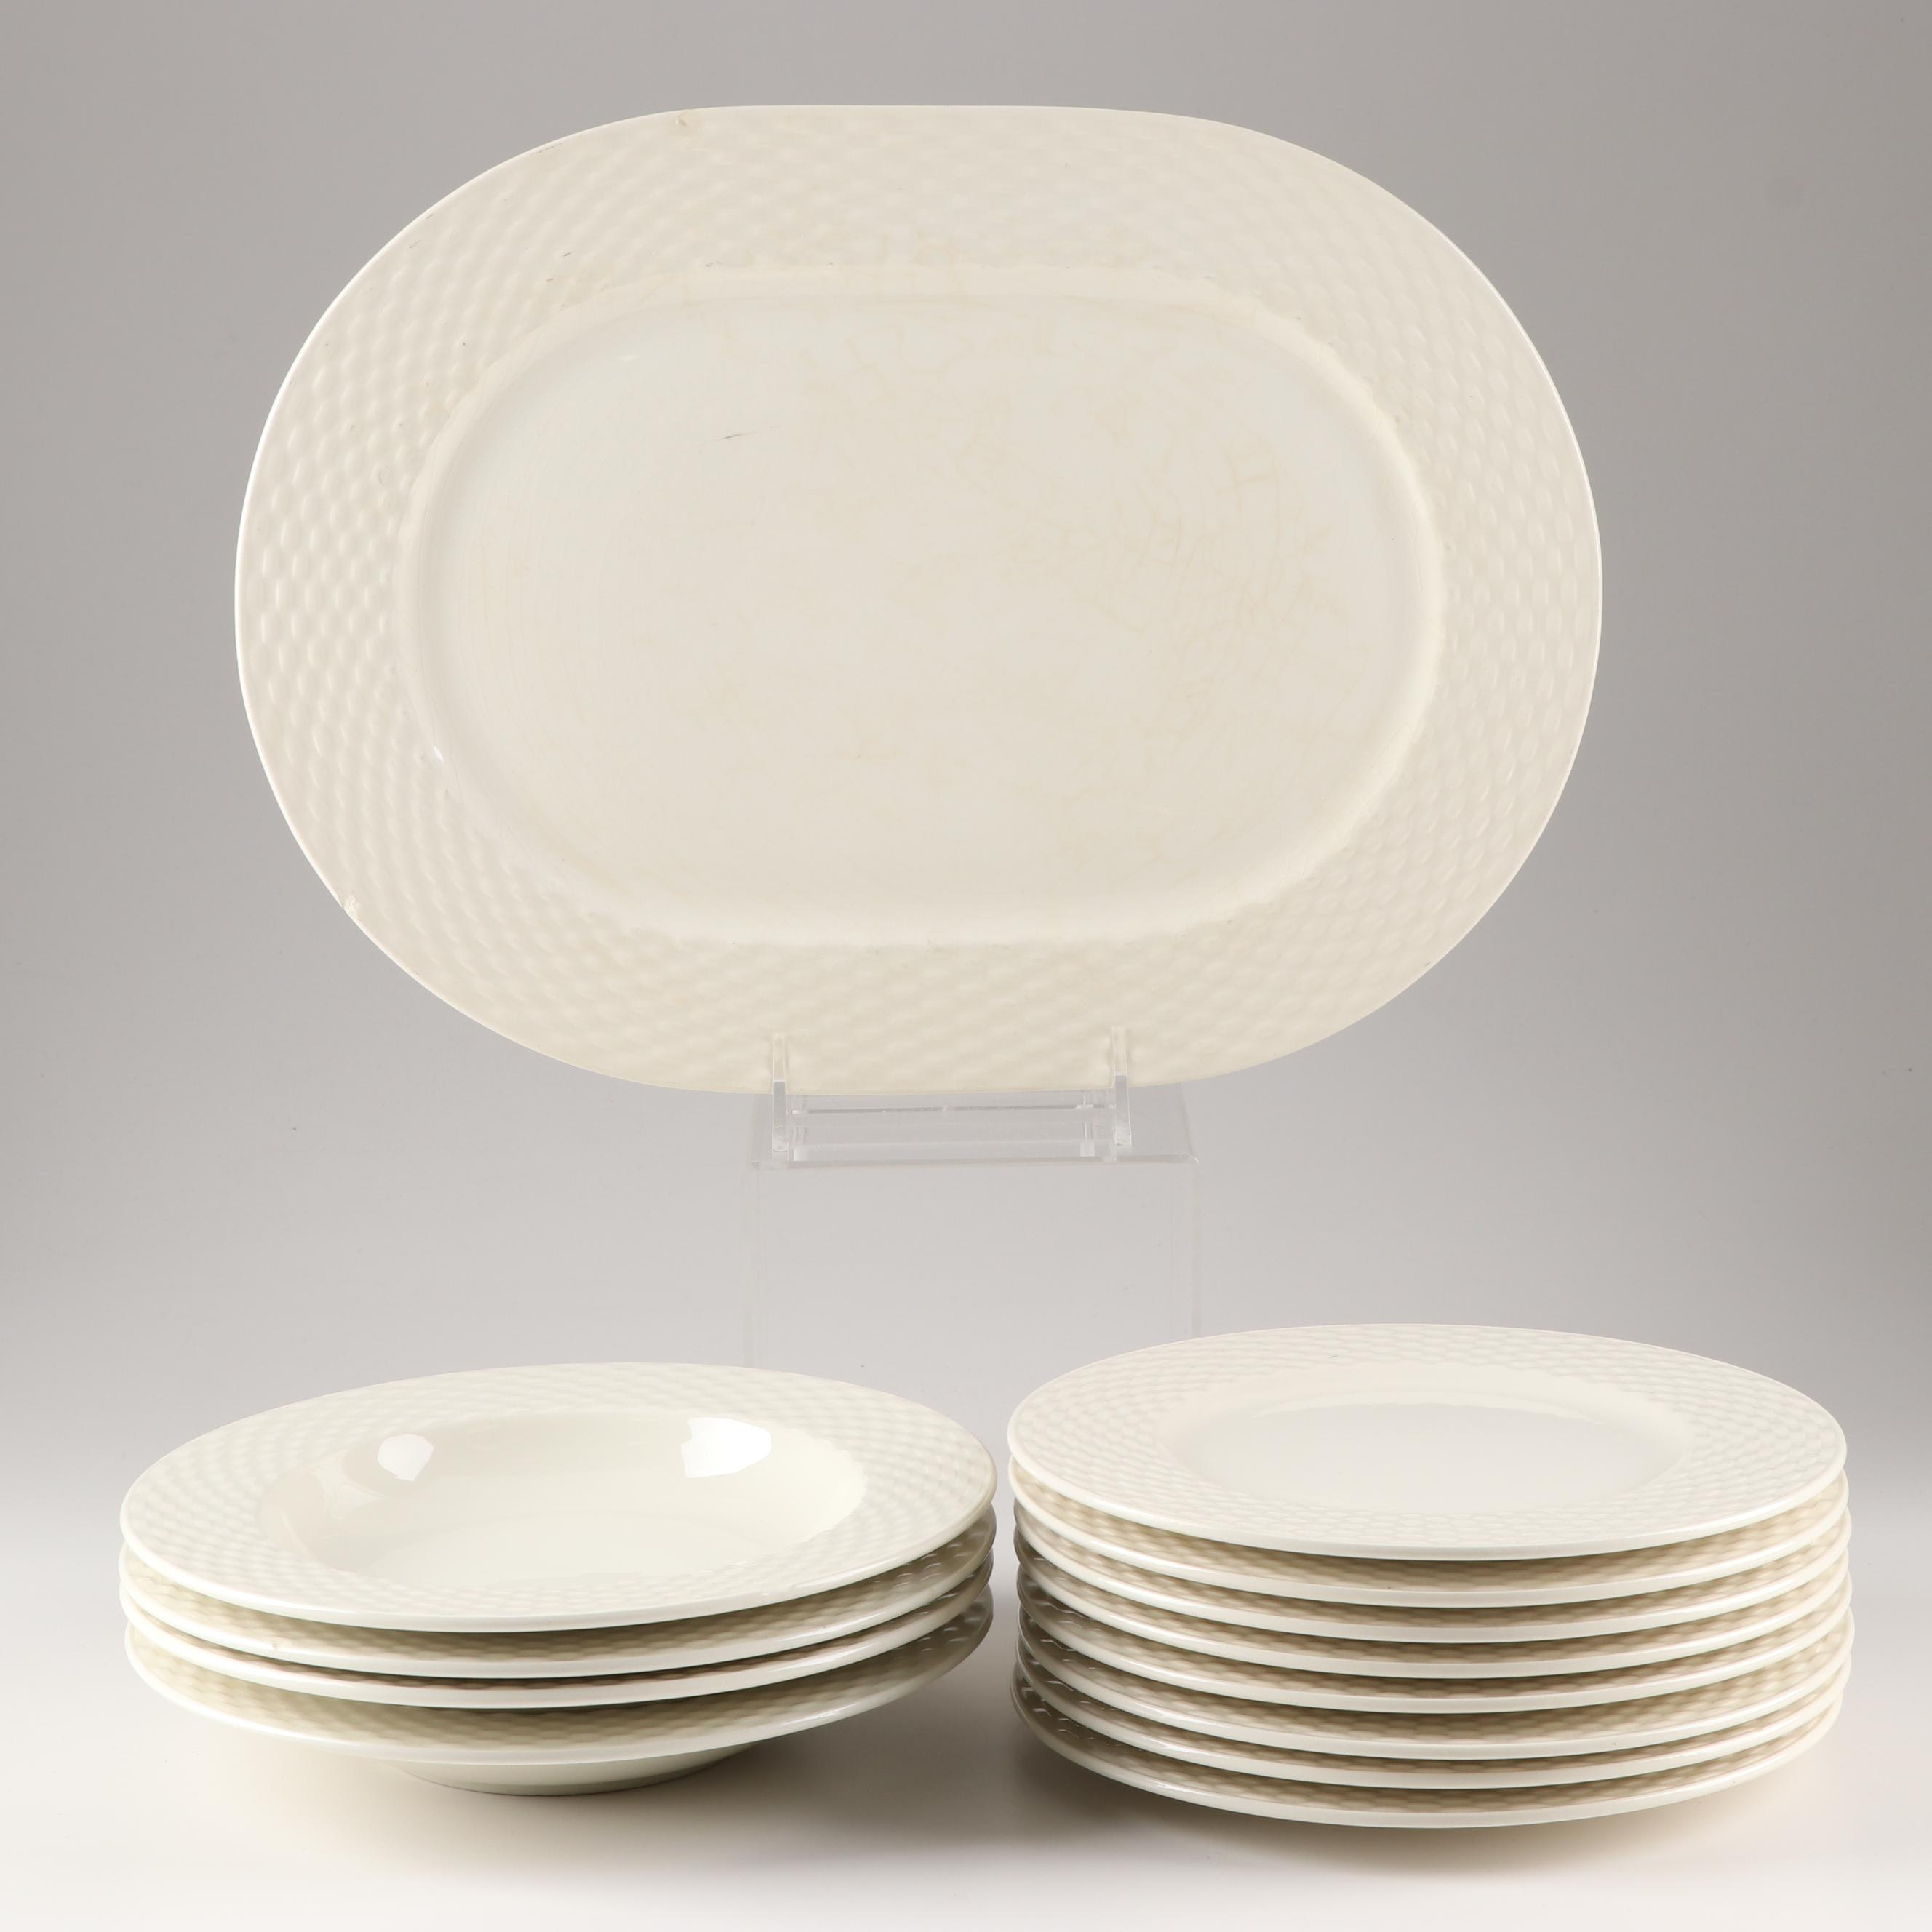 Pagnossin Ironstone President White Dinnerware Grouping